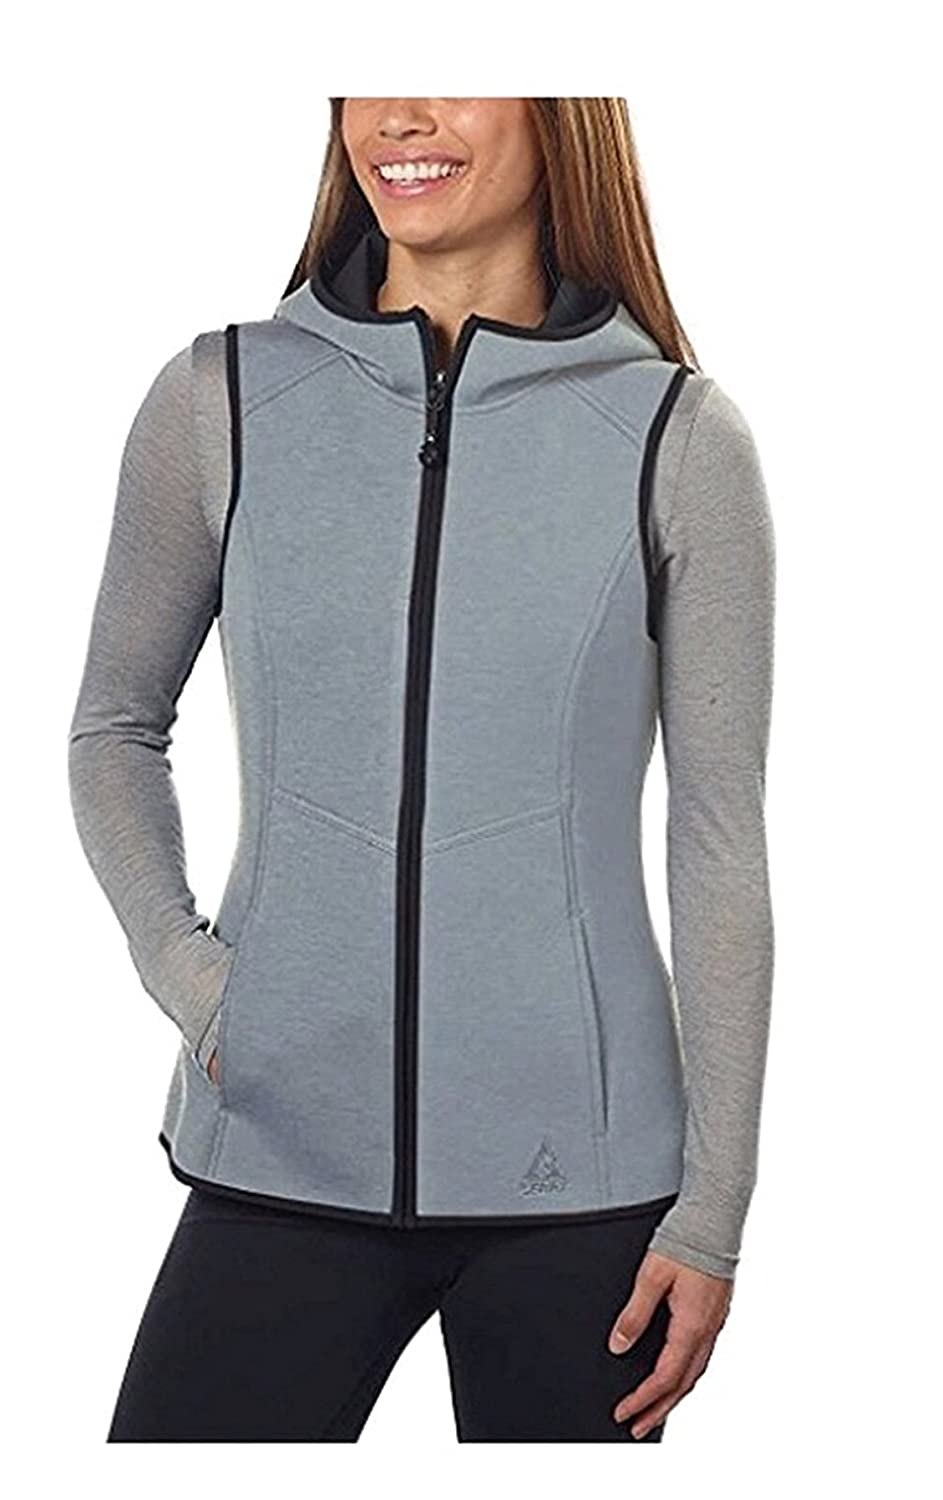 Gerry Ladies' Lightweight Knit Vest